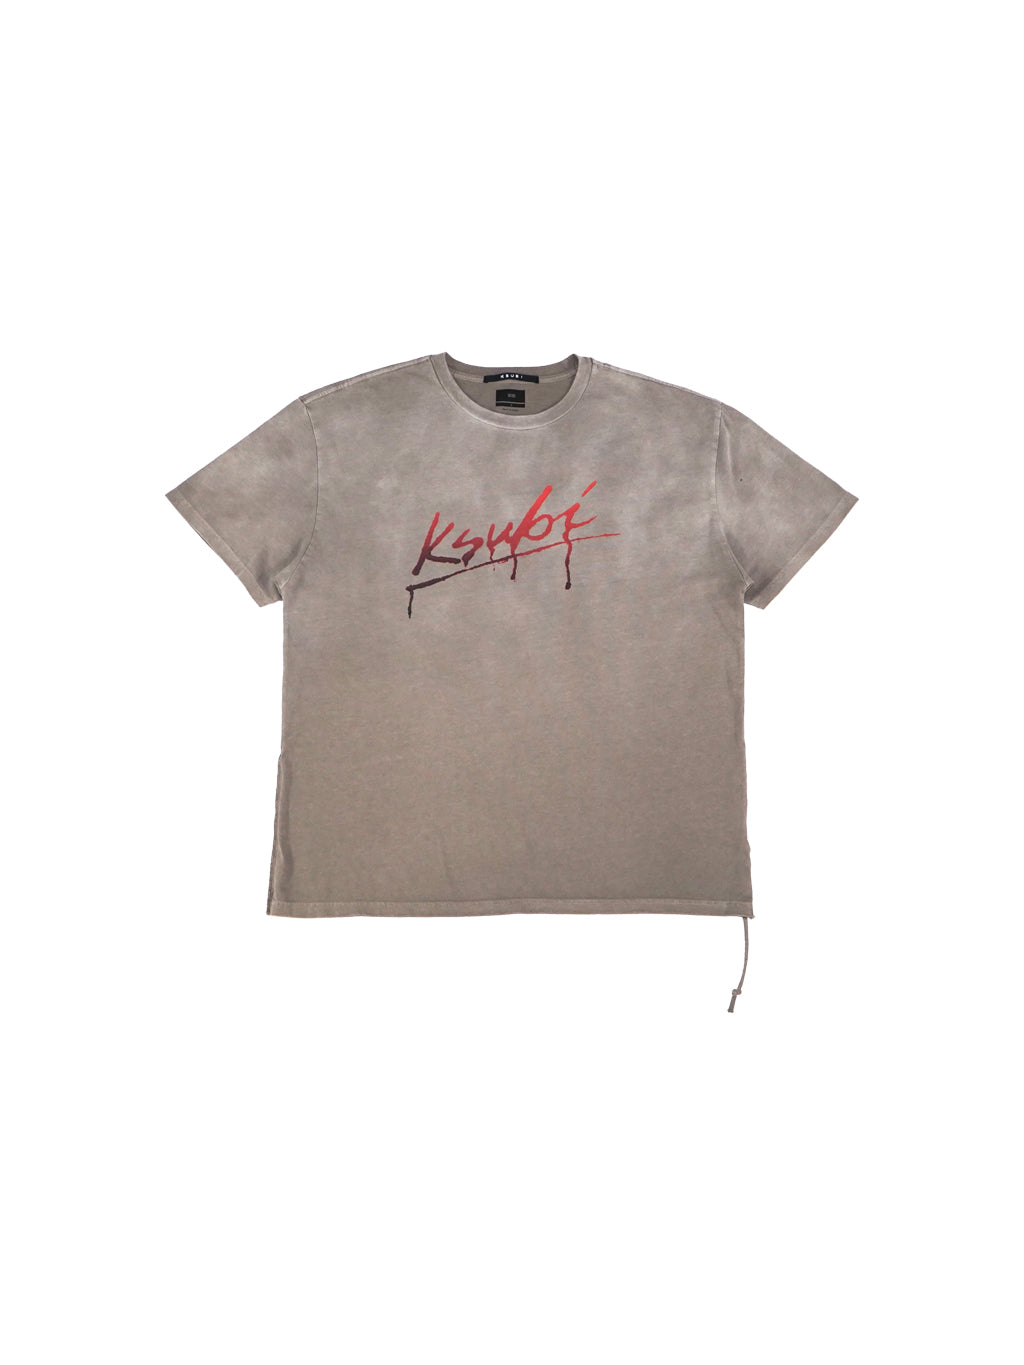 Grey Flint Short Sleeve T-Shirt